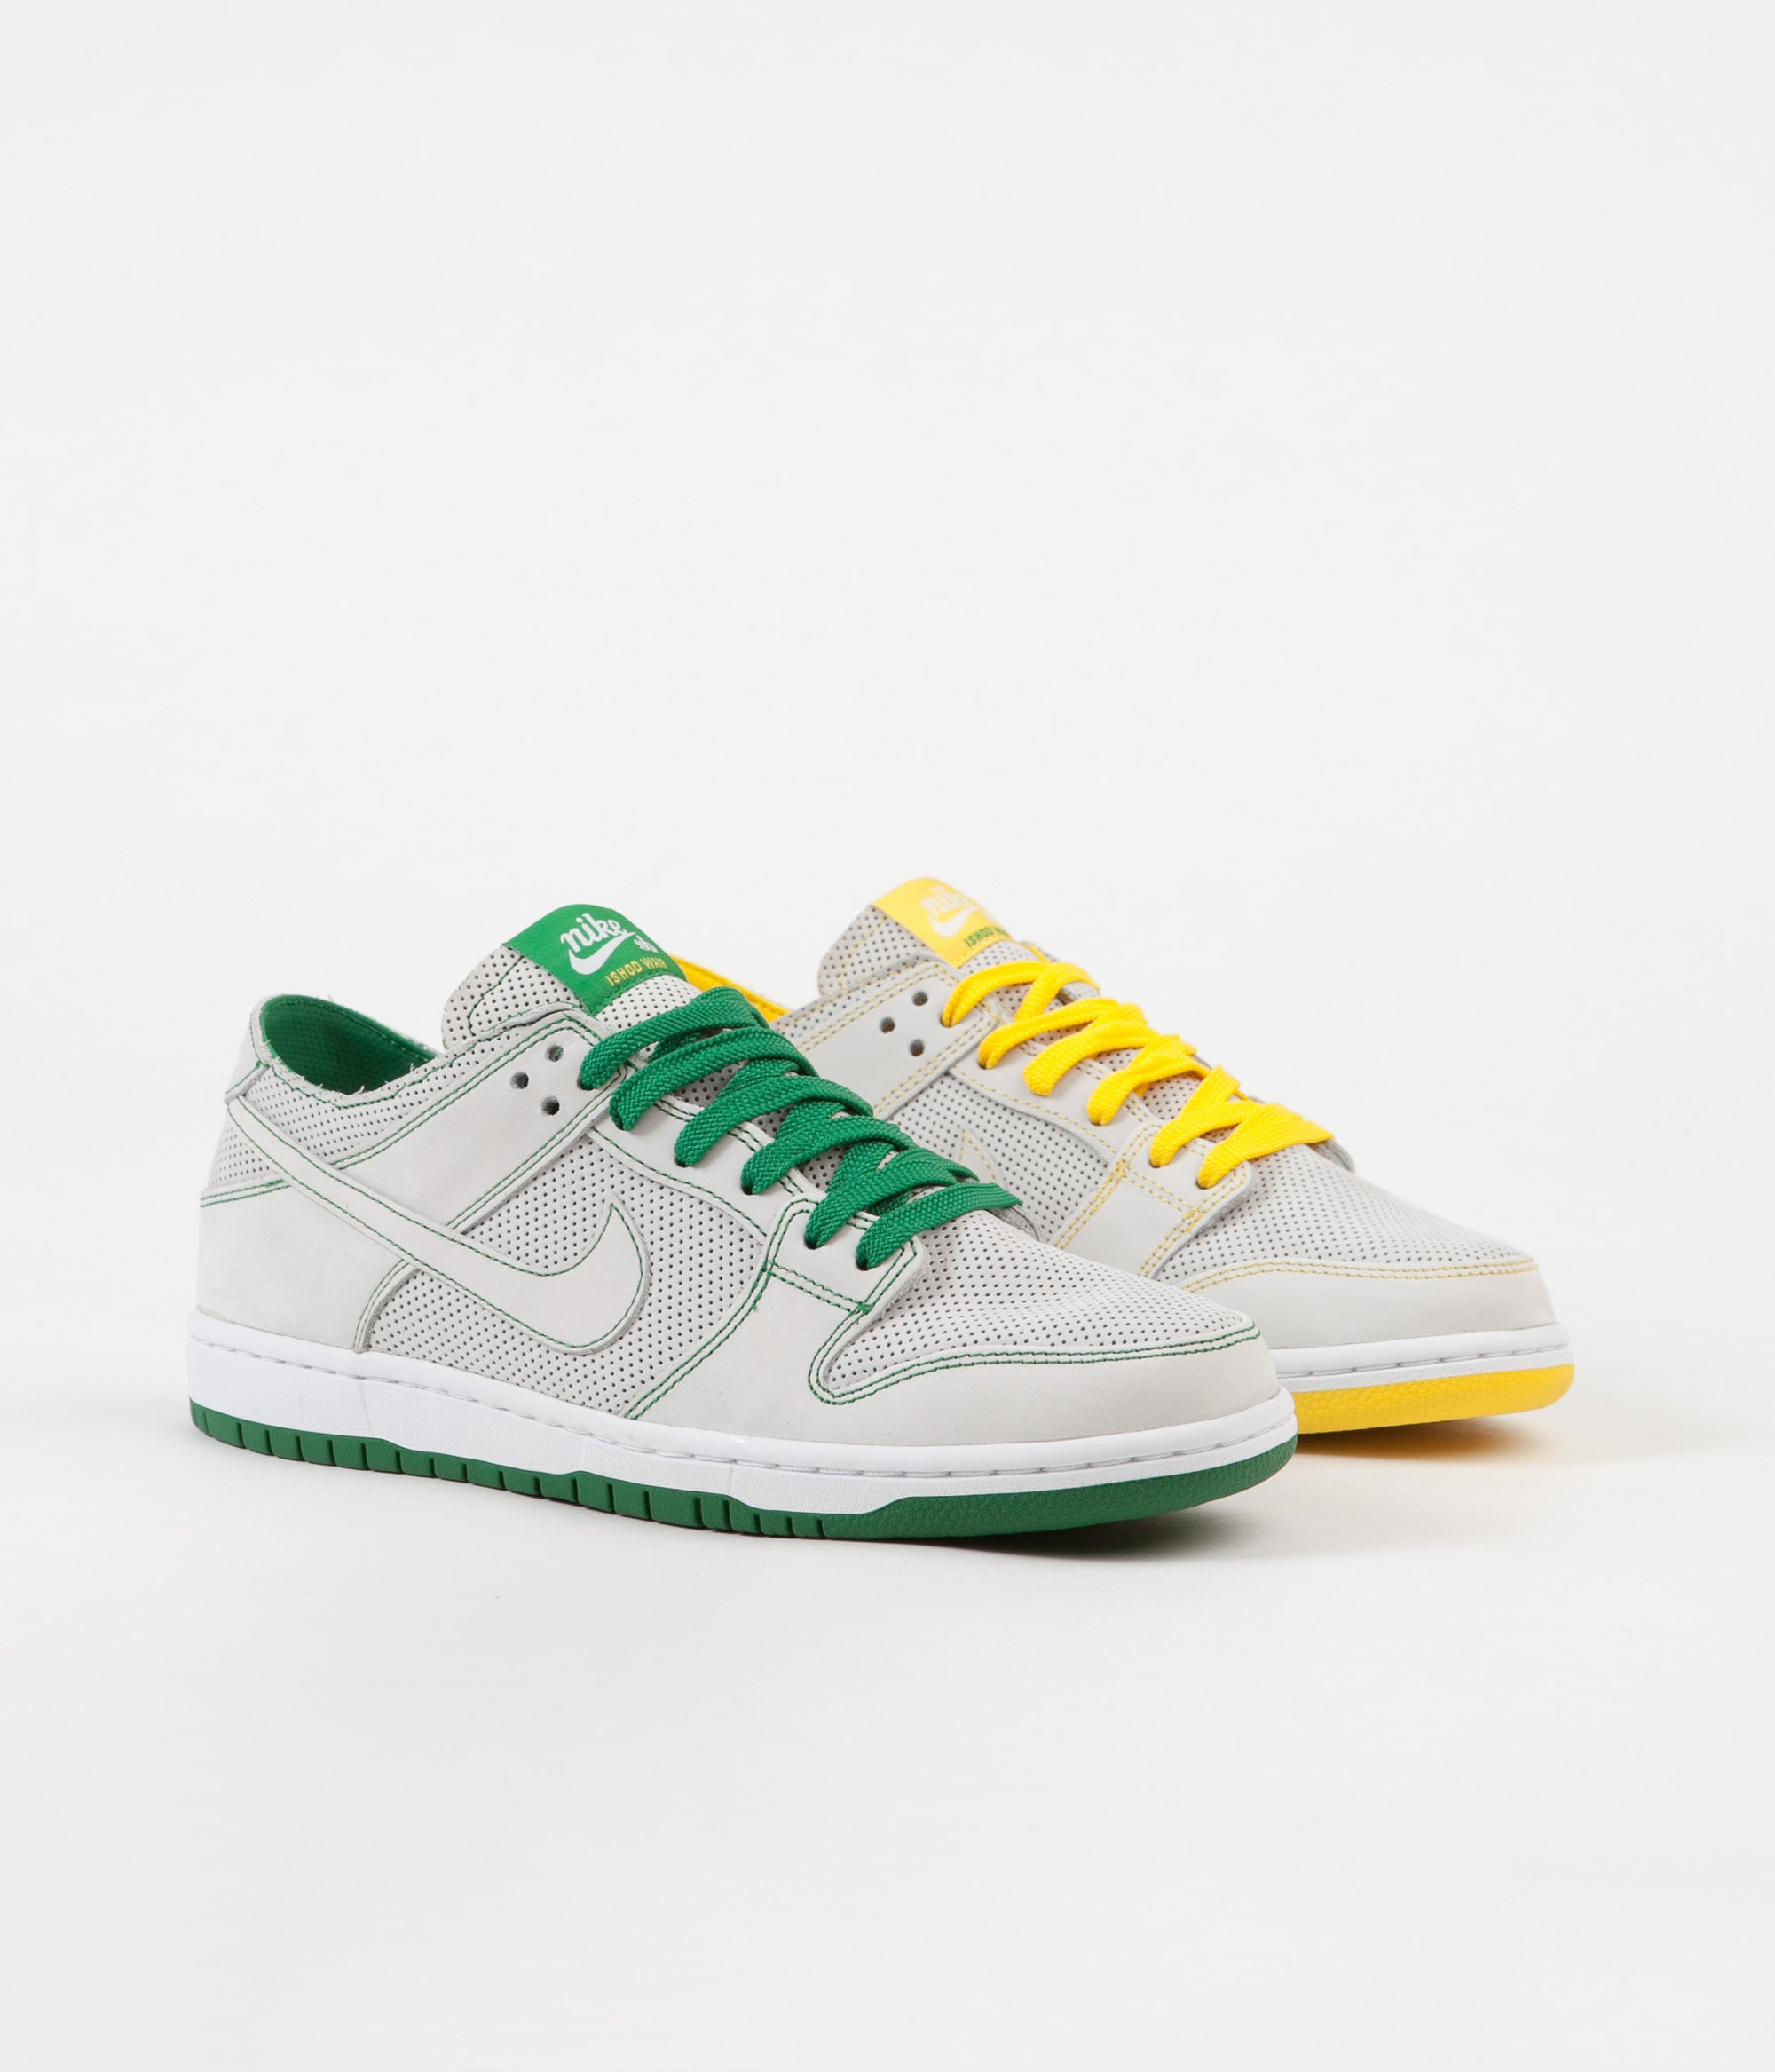 huge discount 8654f fa511 ... france nike sb dunk low pro ishod deconstructed shoes white white aloe  verde 862d9 01821